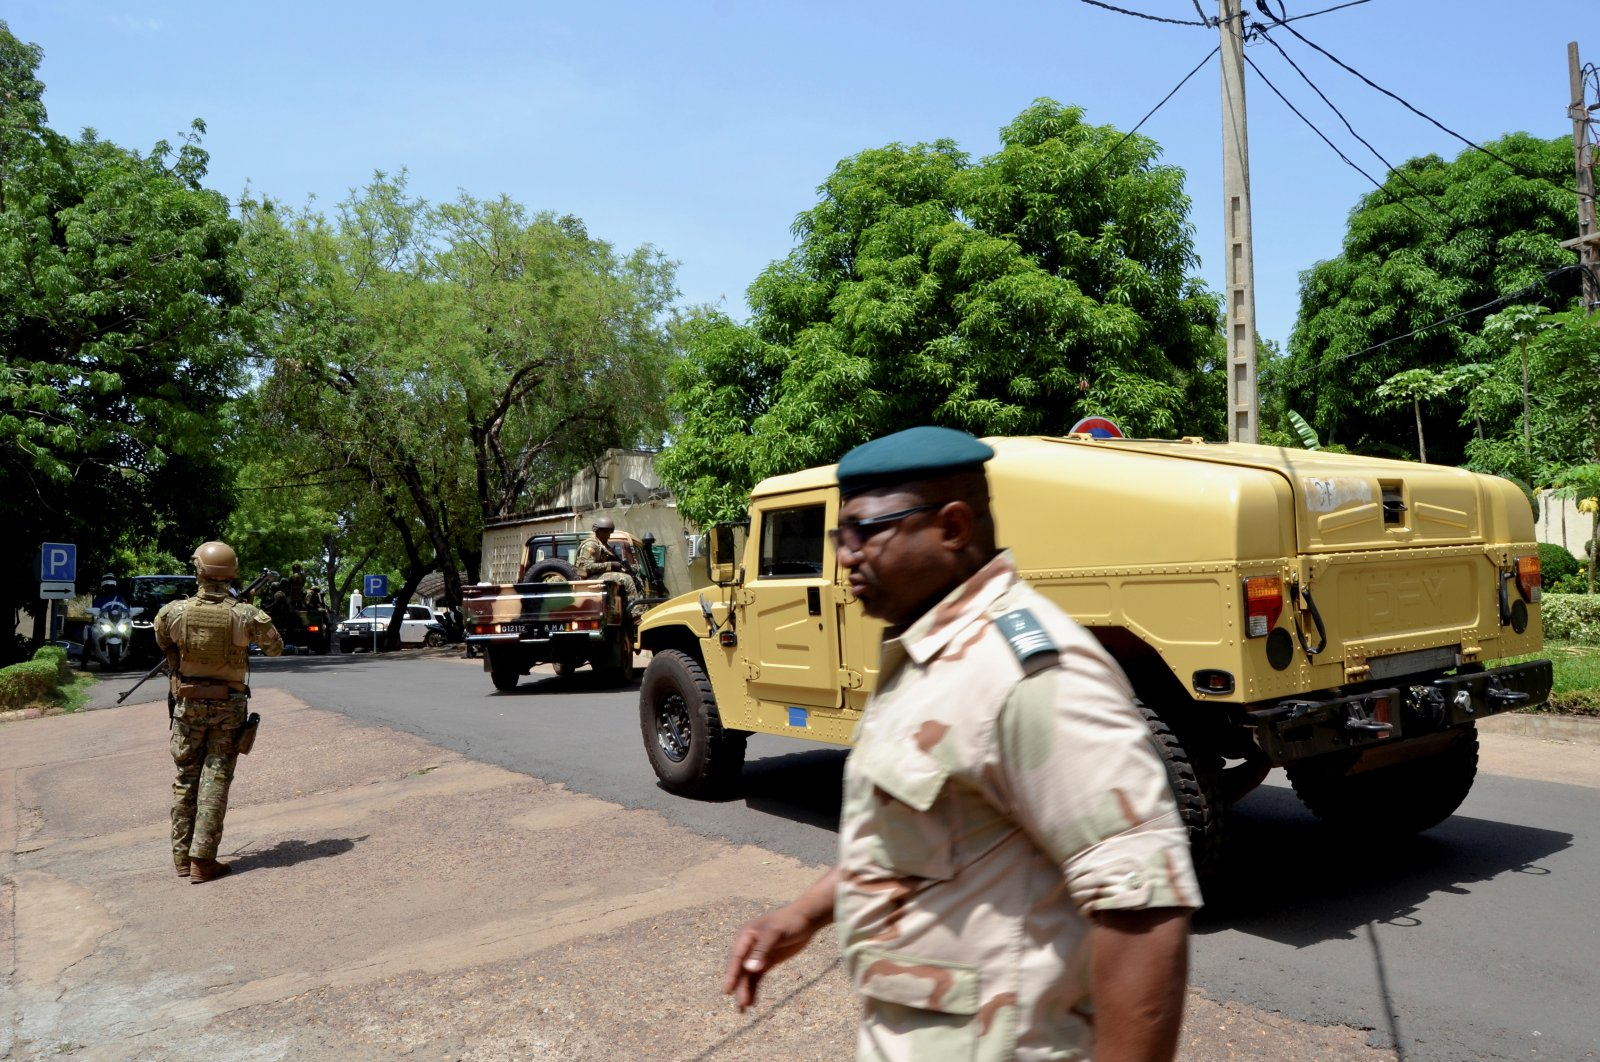 Army members stand guard as the Economic Community of West African States (ECOWAS) mediators delegation meet with Vice President Colonel Assimi Goita regarding the Mali crisis, Bamako, Mali, May 26, 2021. (Reuters Photo)